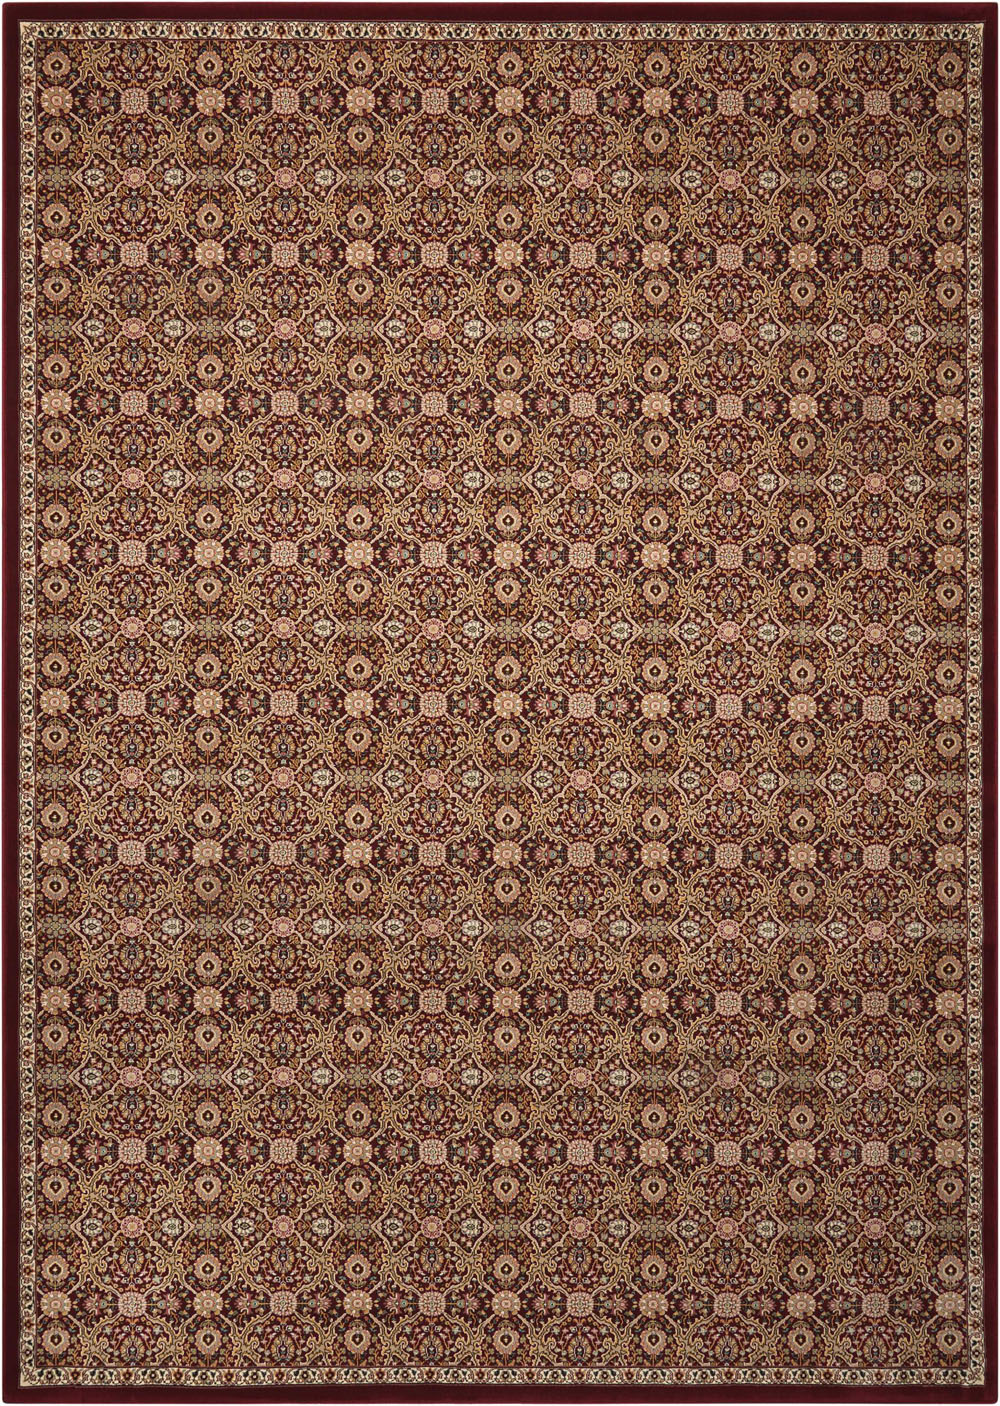 Kathy Ireland KI11 ANTIQUITIES ANT08 BURGUNDY Rug